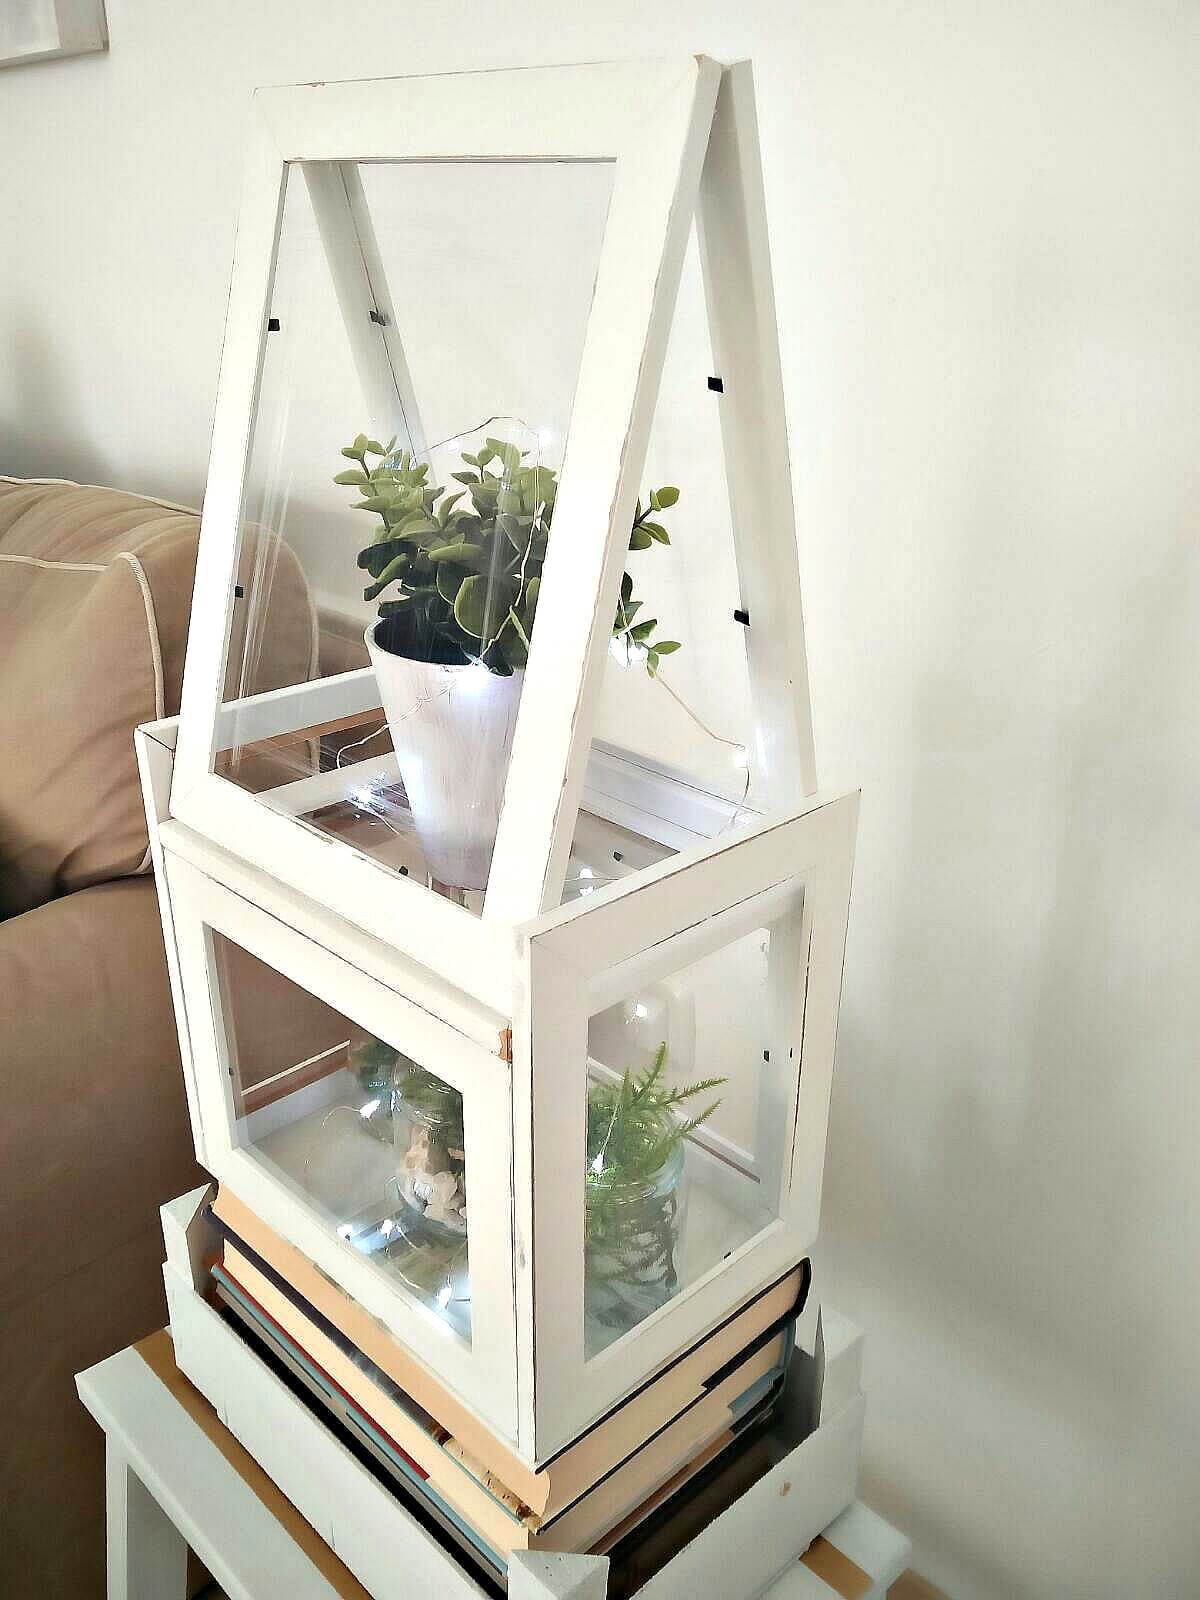 Ikea frames terrarium, by Kreativ K, featured on Funky Junk Interiors